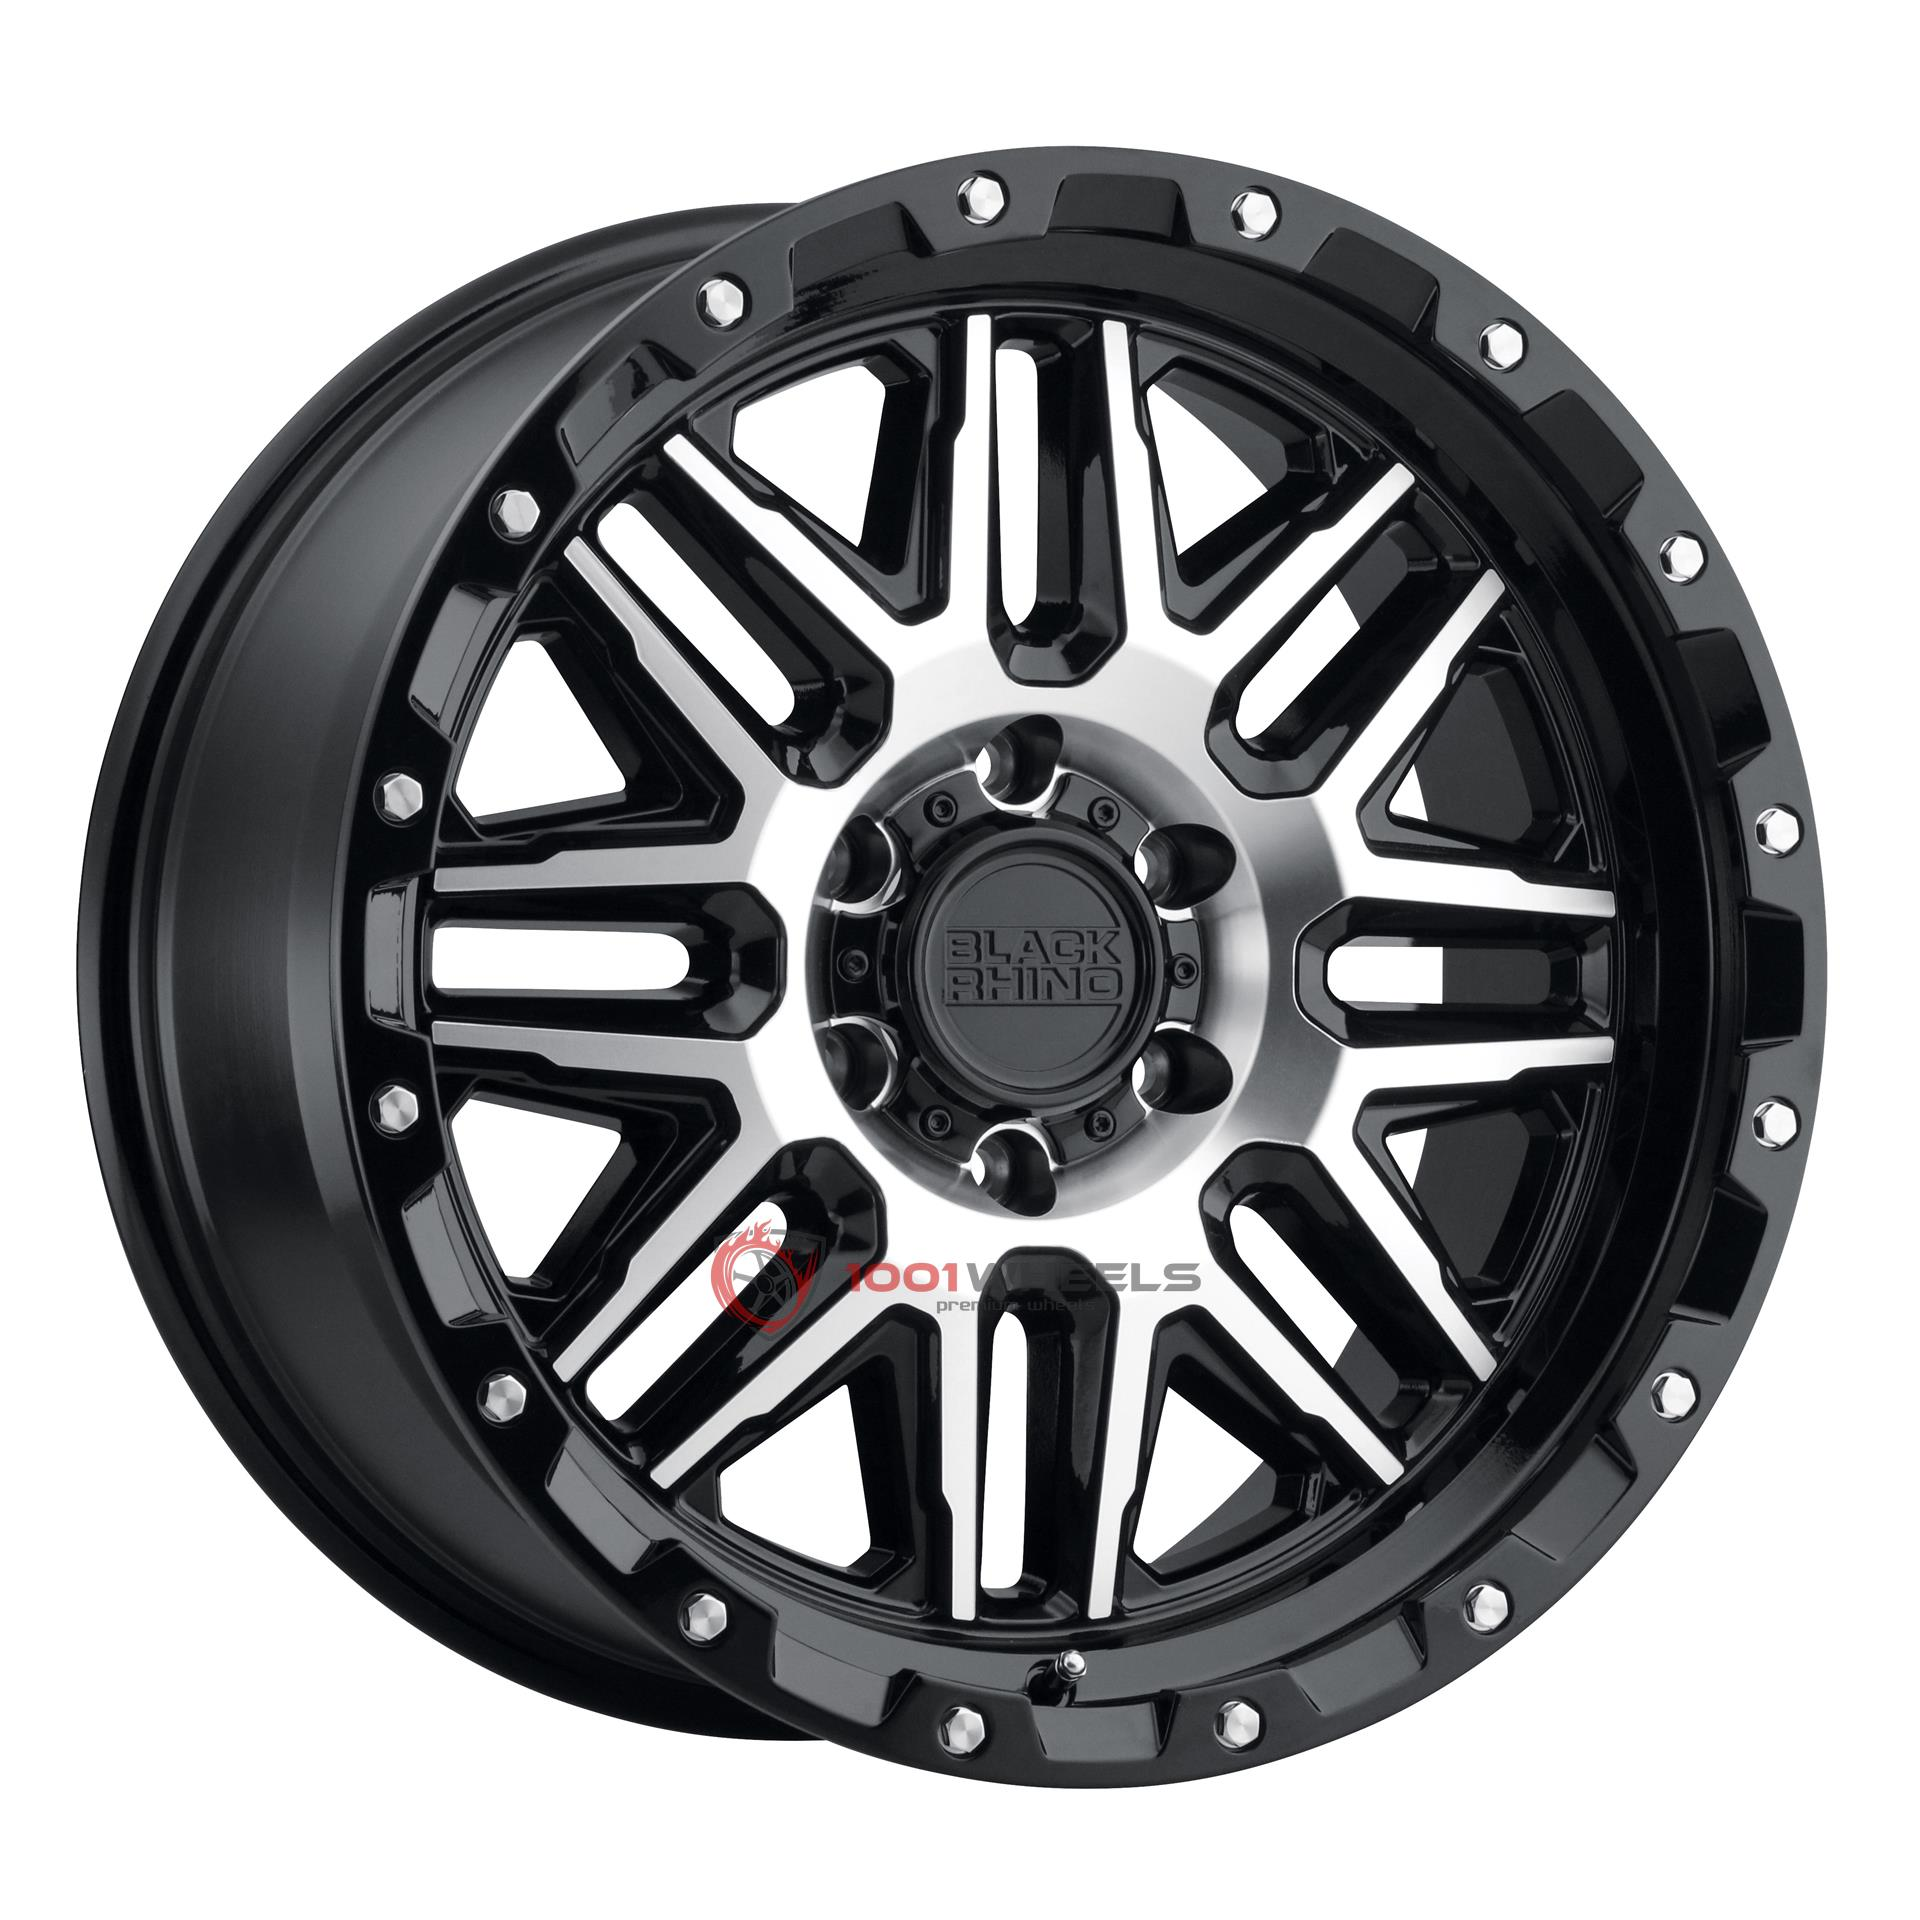 BLACK RHINO ALAMO gloss-black-wmachined-face-and-stainless-bolts